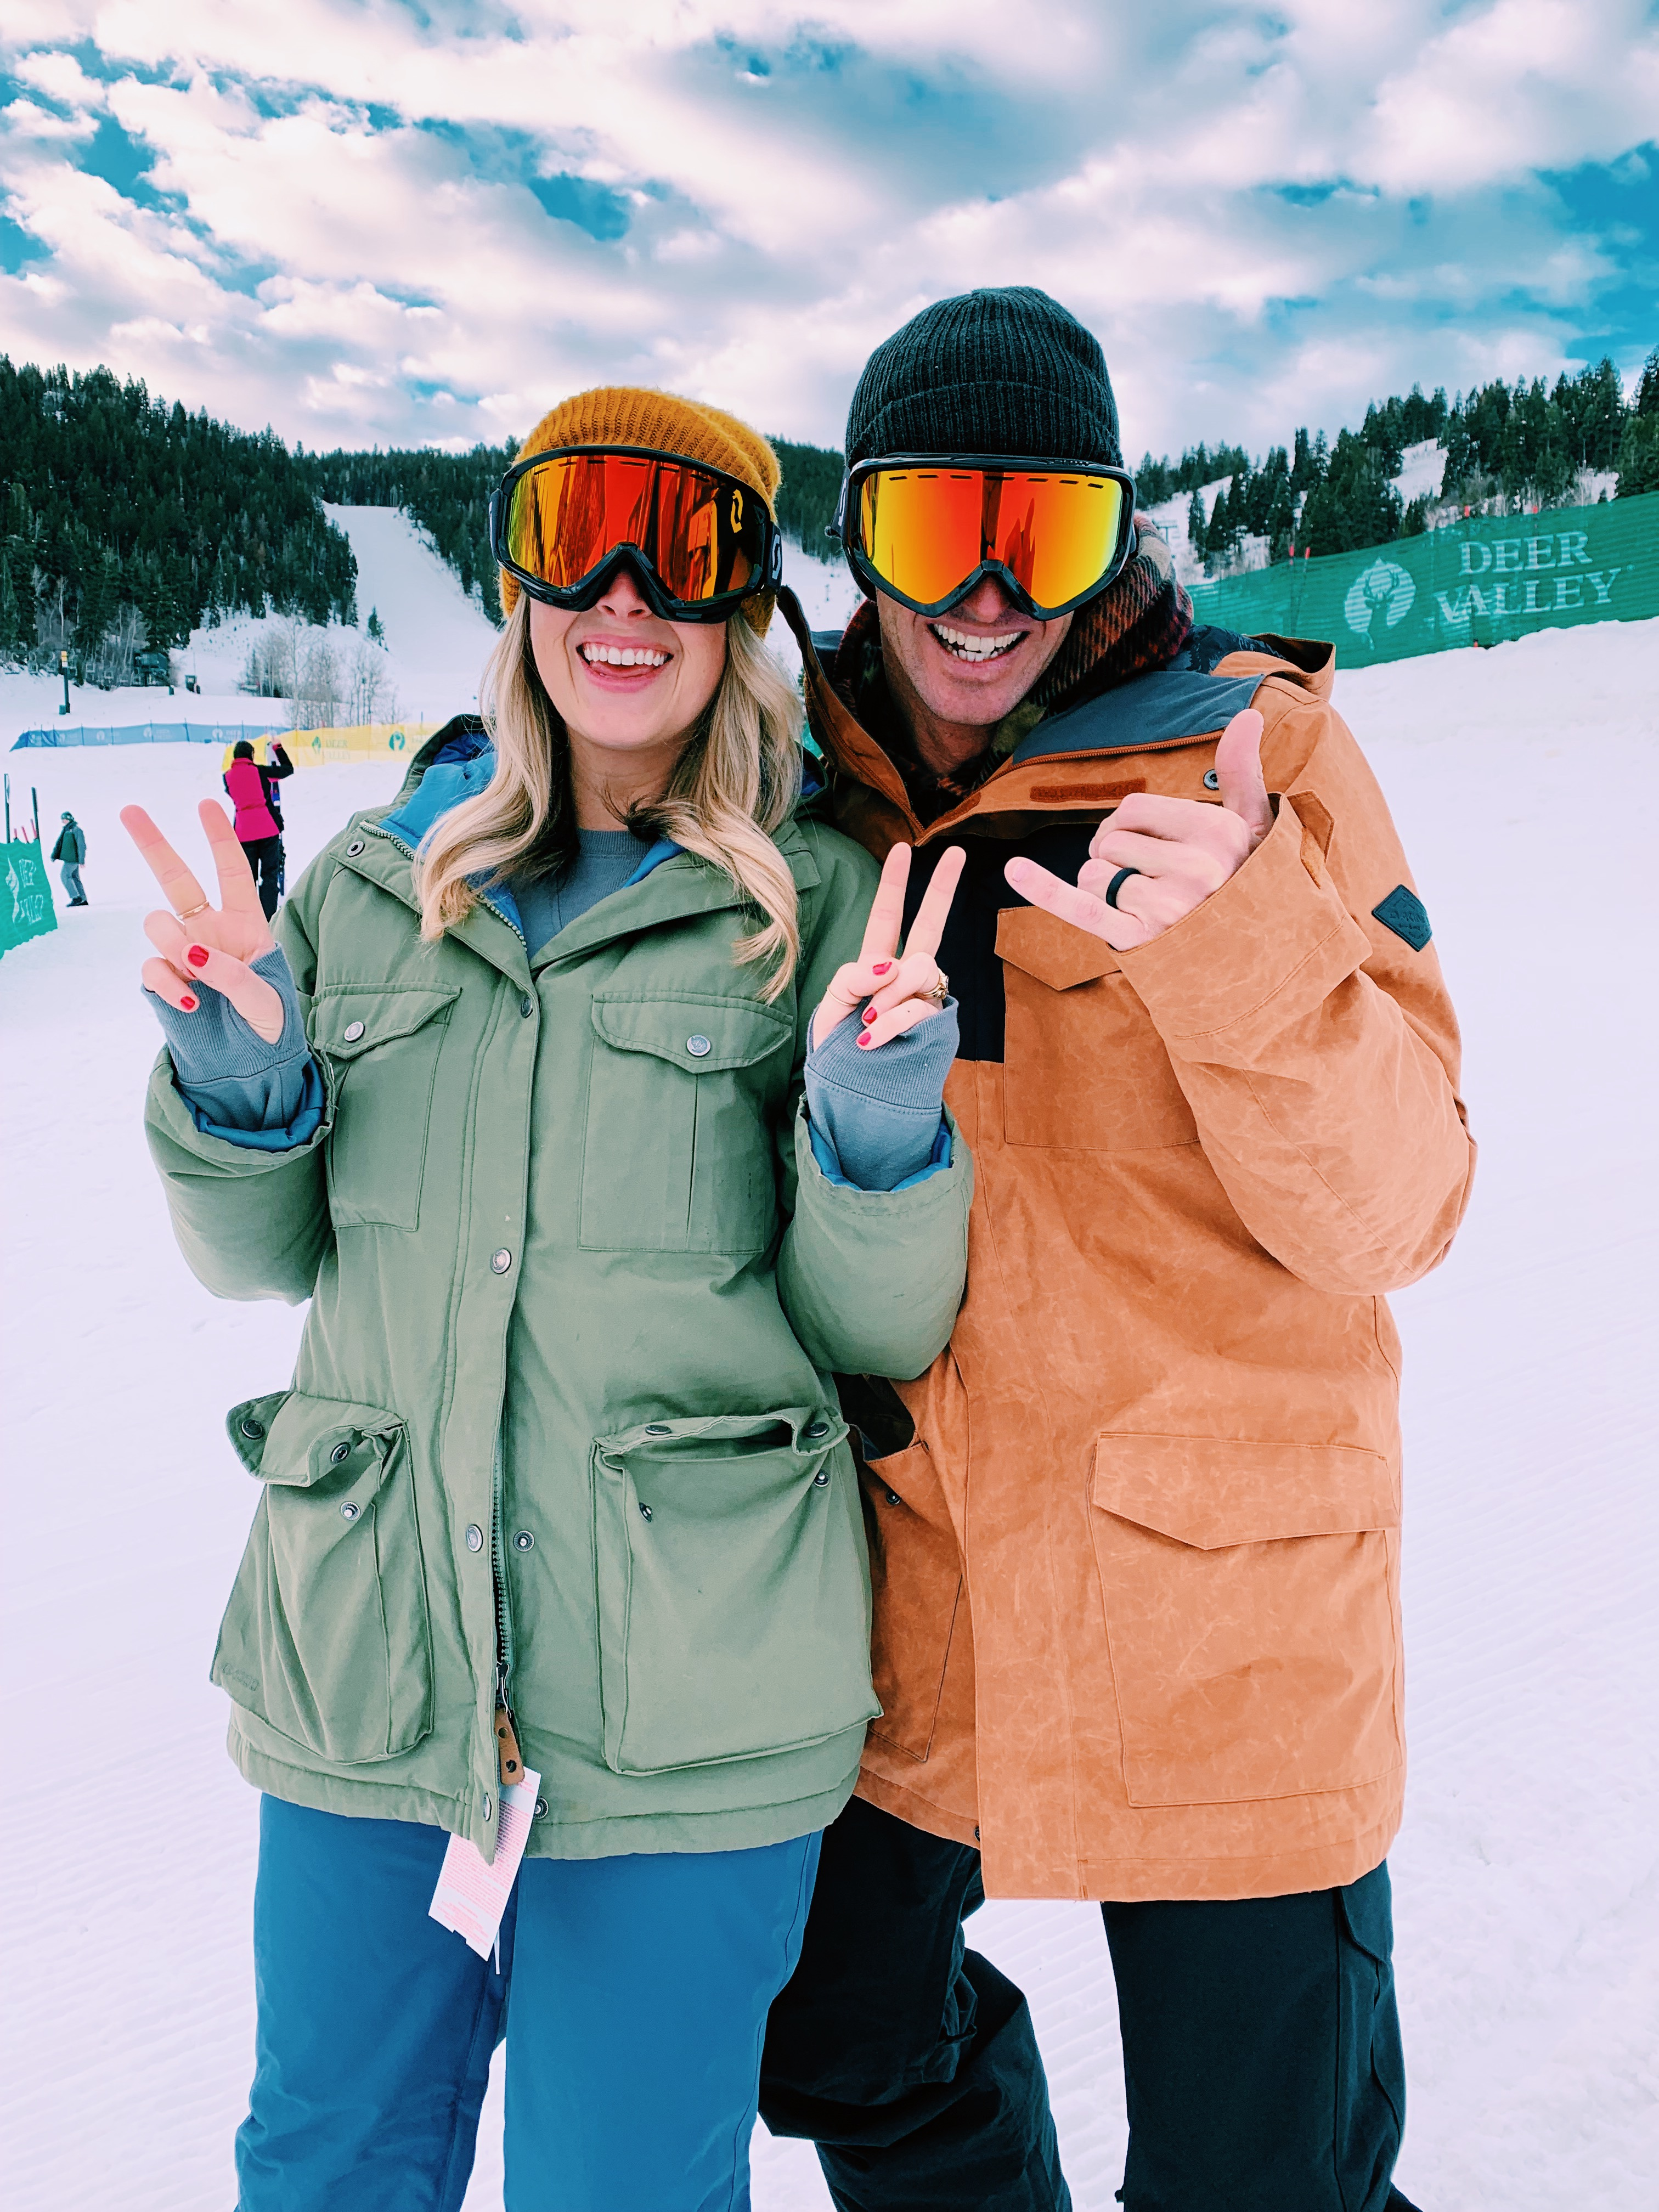 @grilledcheesesocial's cover photo for 'Vacationing in Deer Valley, Utah'